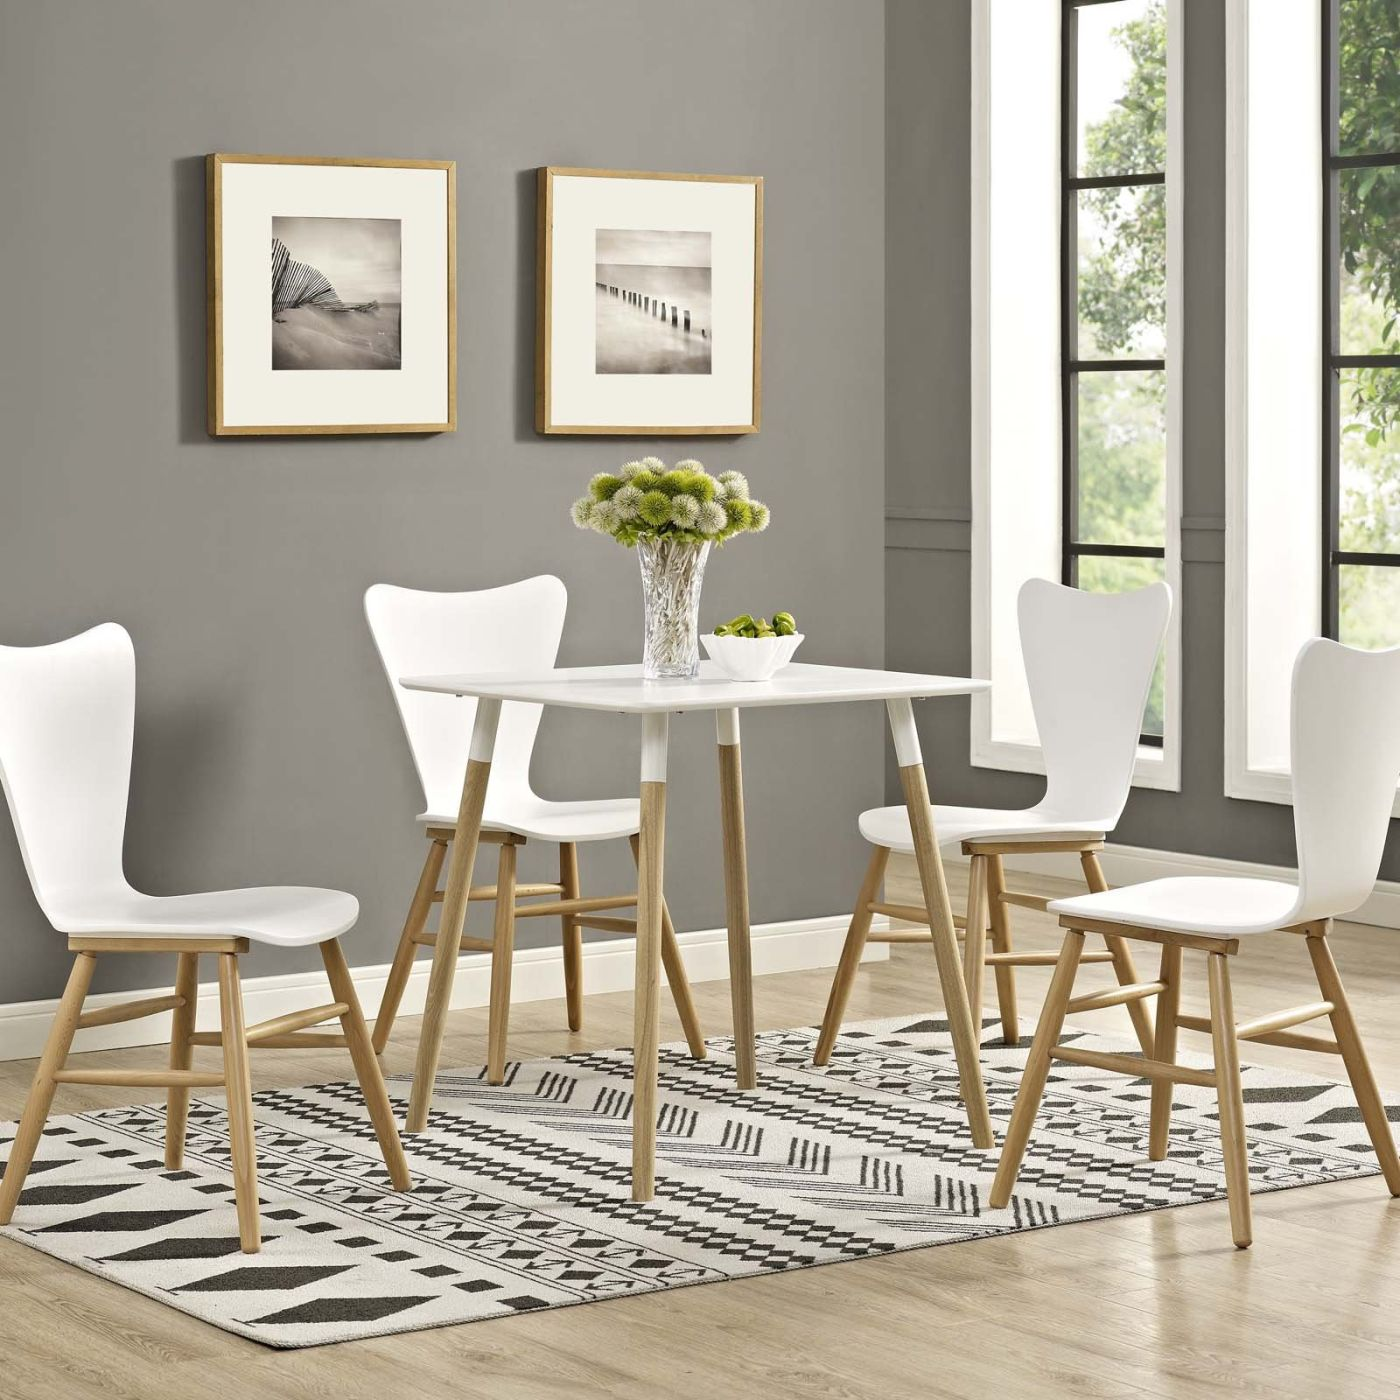 Modern square white dining table -  Continuum 28 Modern Square White Dining Table